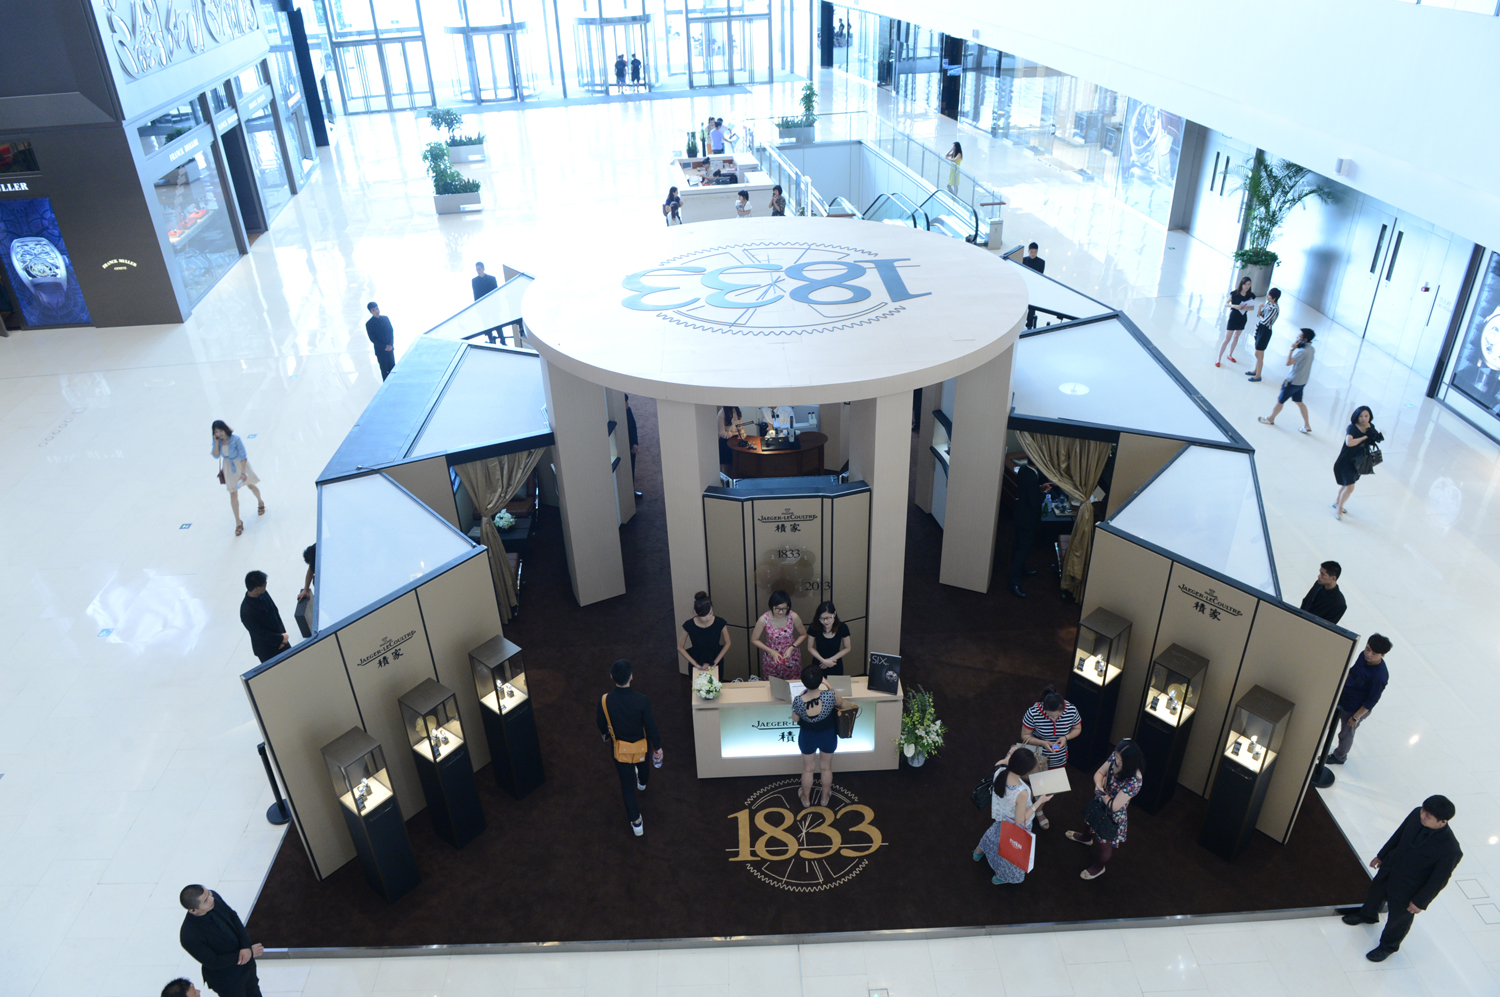 Jaeger Lecoultre - 180th Anniversary Exhibition